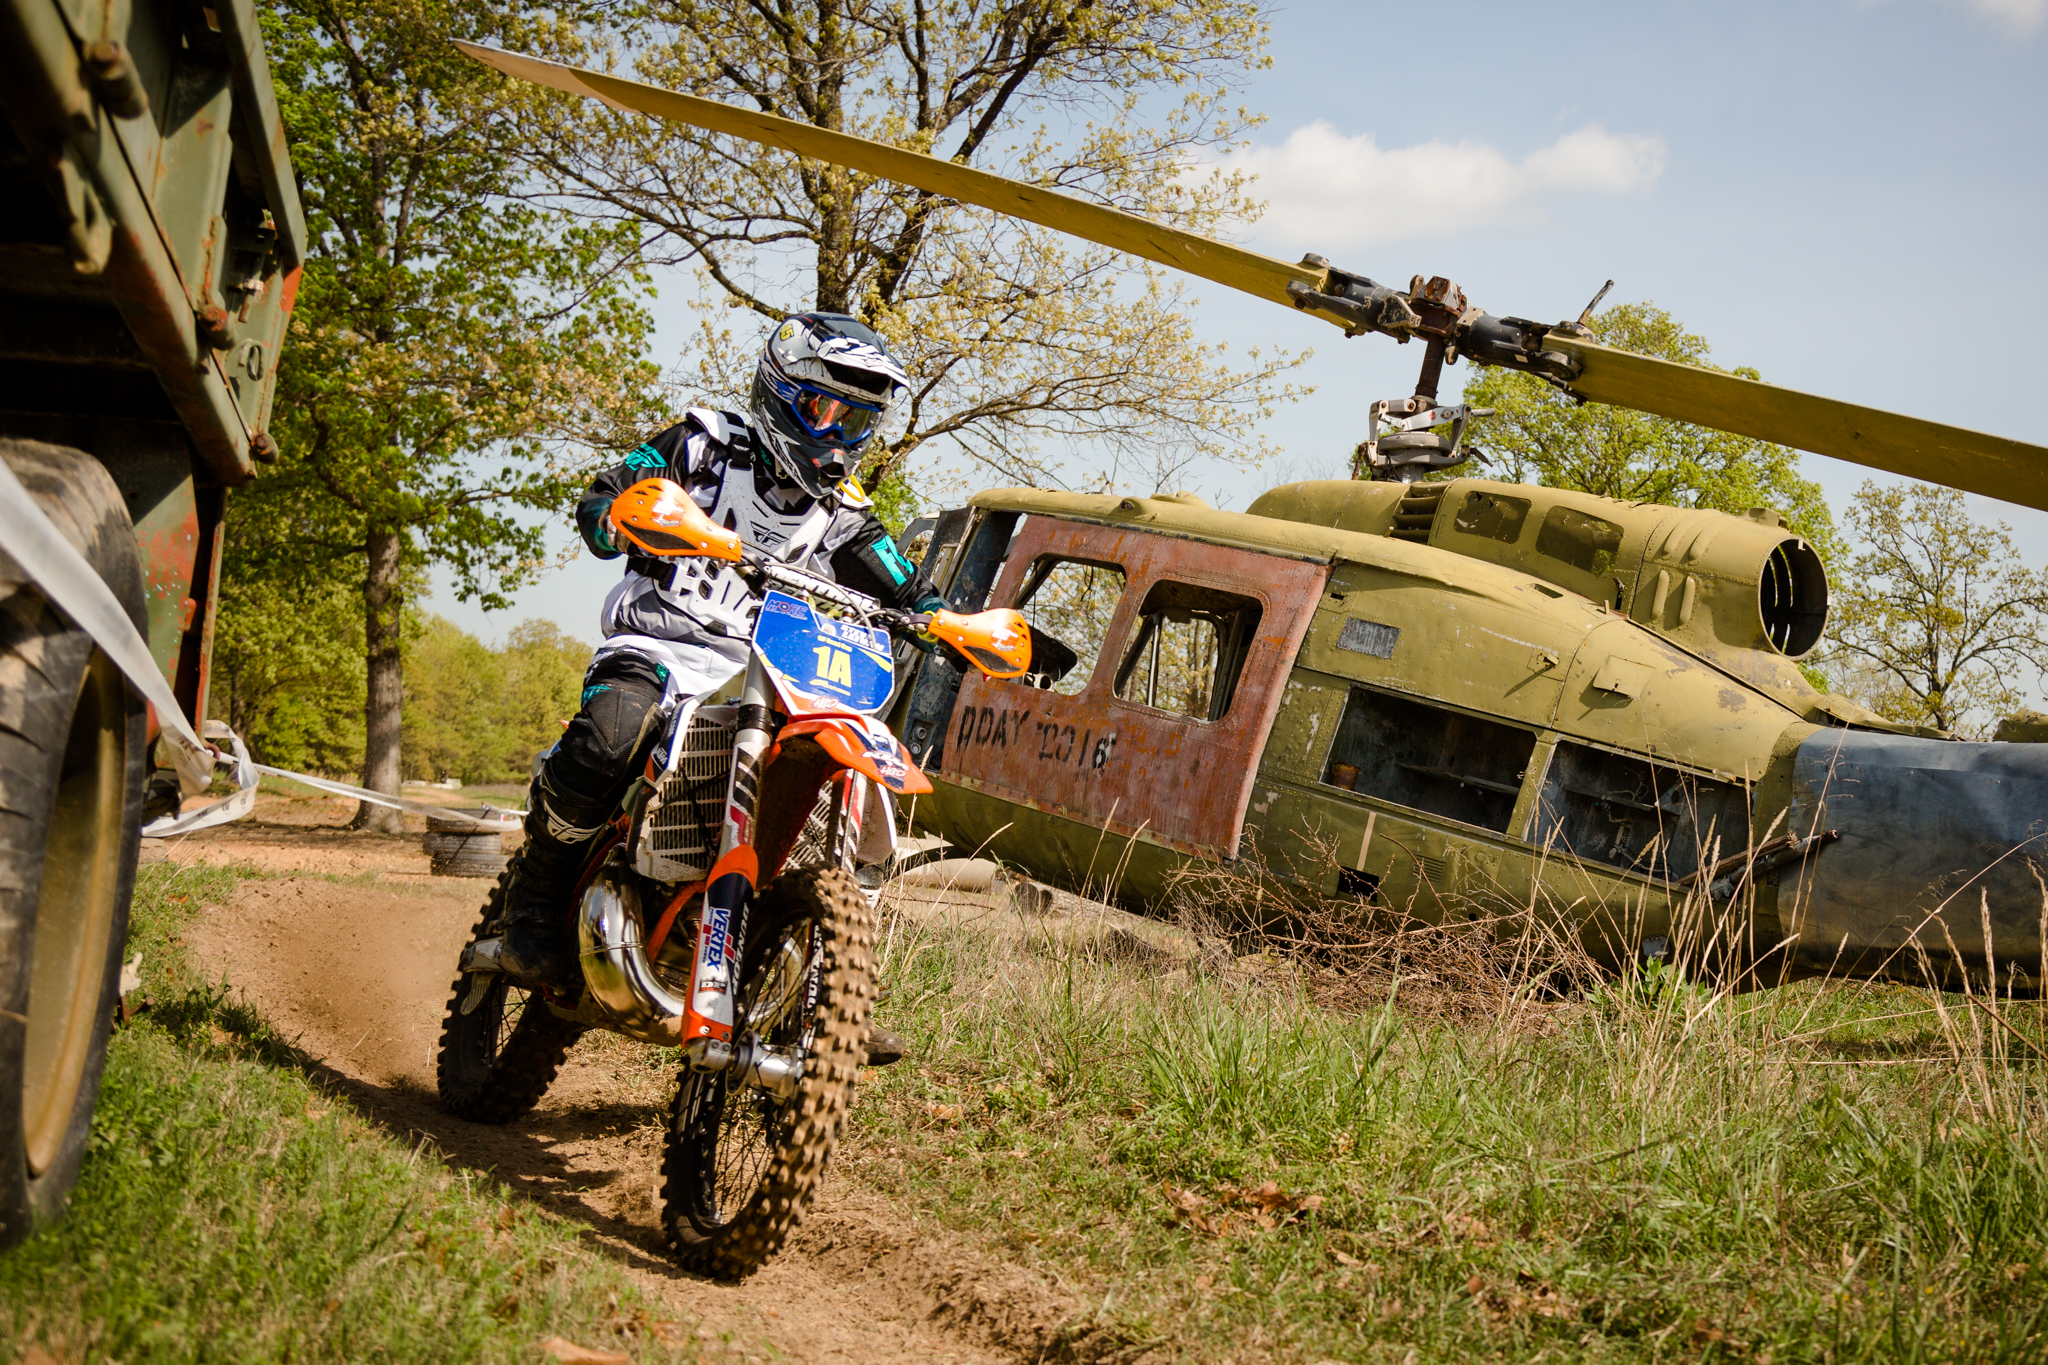 Not only does Steve Leivan race off-road motorcycles, he also helps promote off-road events. Photo: Robin Nordmeyer.